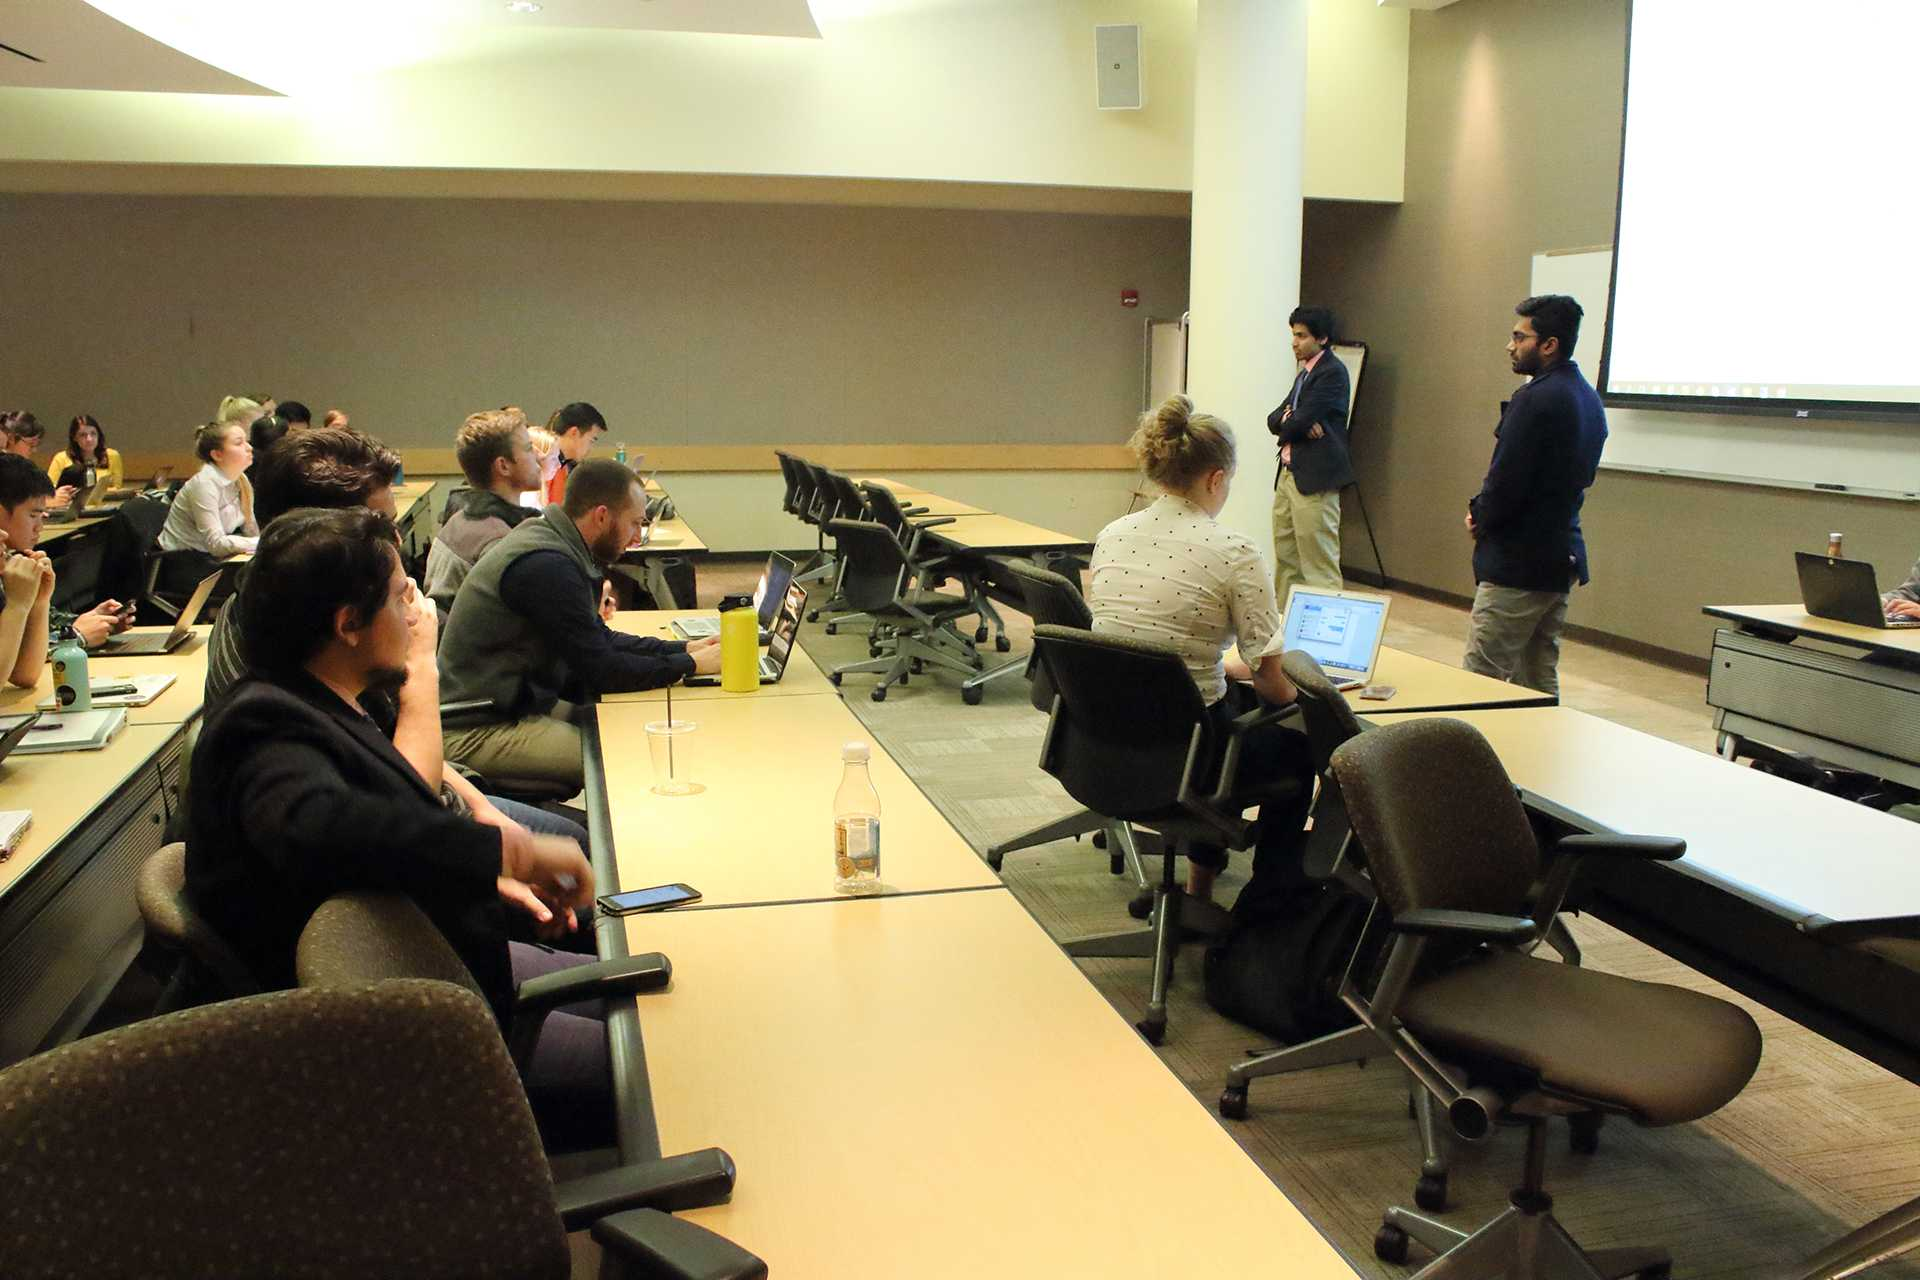 UISG Senators Sanjeev Thangarajah and Akash Bhalerao proposing new legislation at the University Capital Center on Tuesday, Nov. 14, 2017. UISG passed legislation about a new constituency position to increase international inclusion. (Ashley Morris/The Daily Iowan)